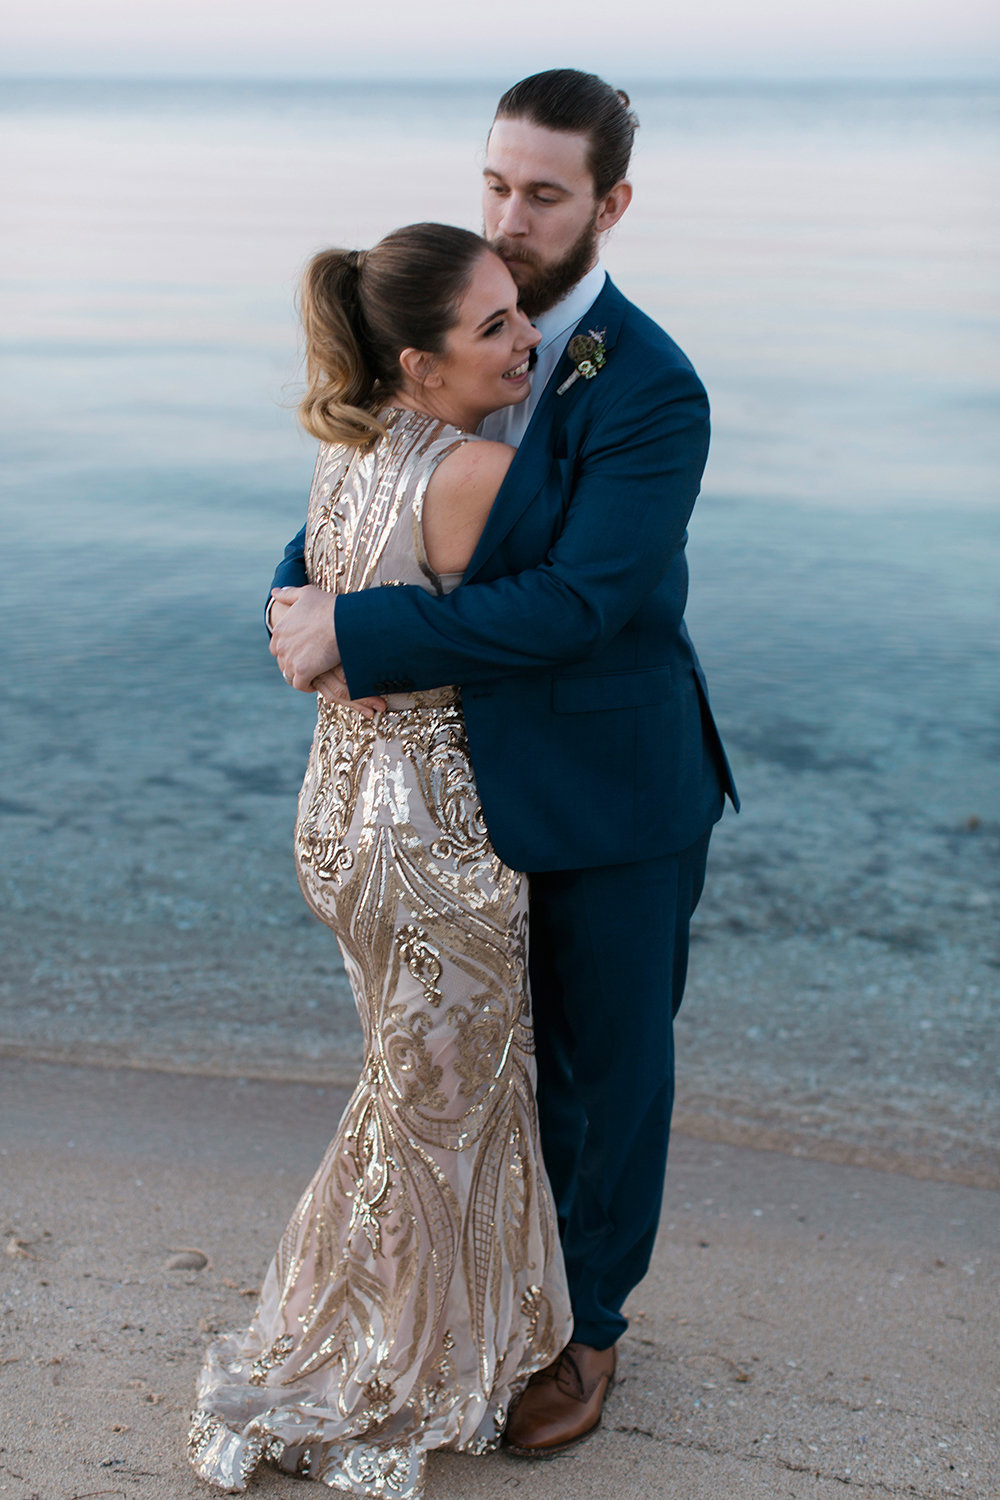 Sunset beach moments with Geelong Wedding Photographer Monika Berry